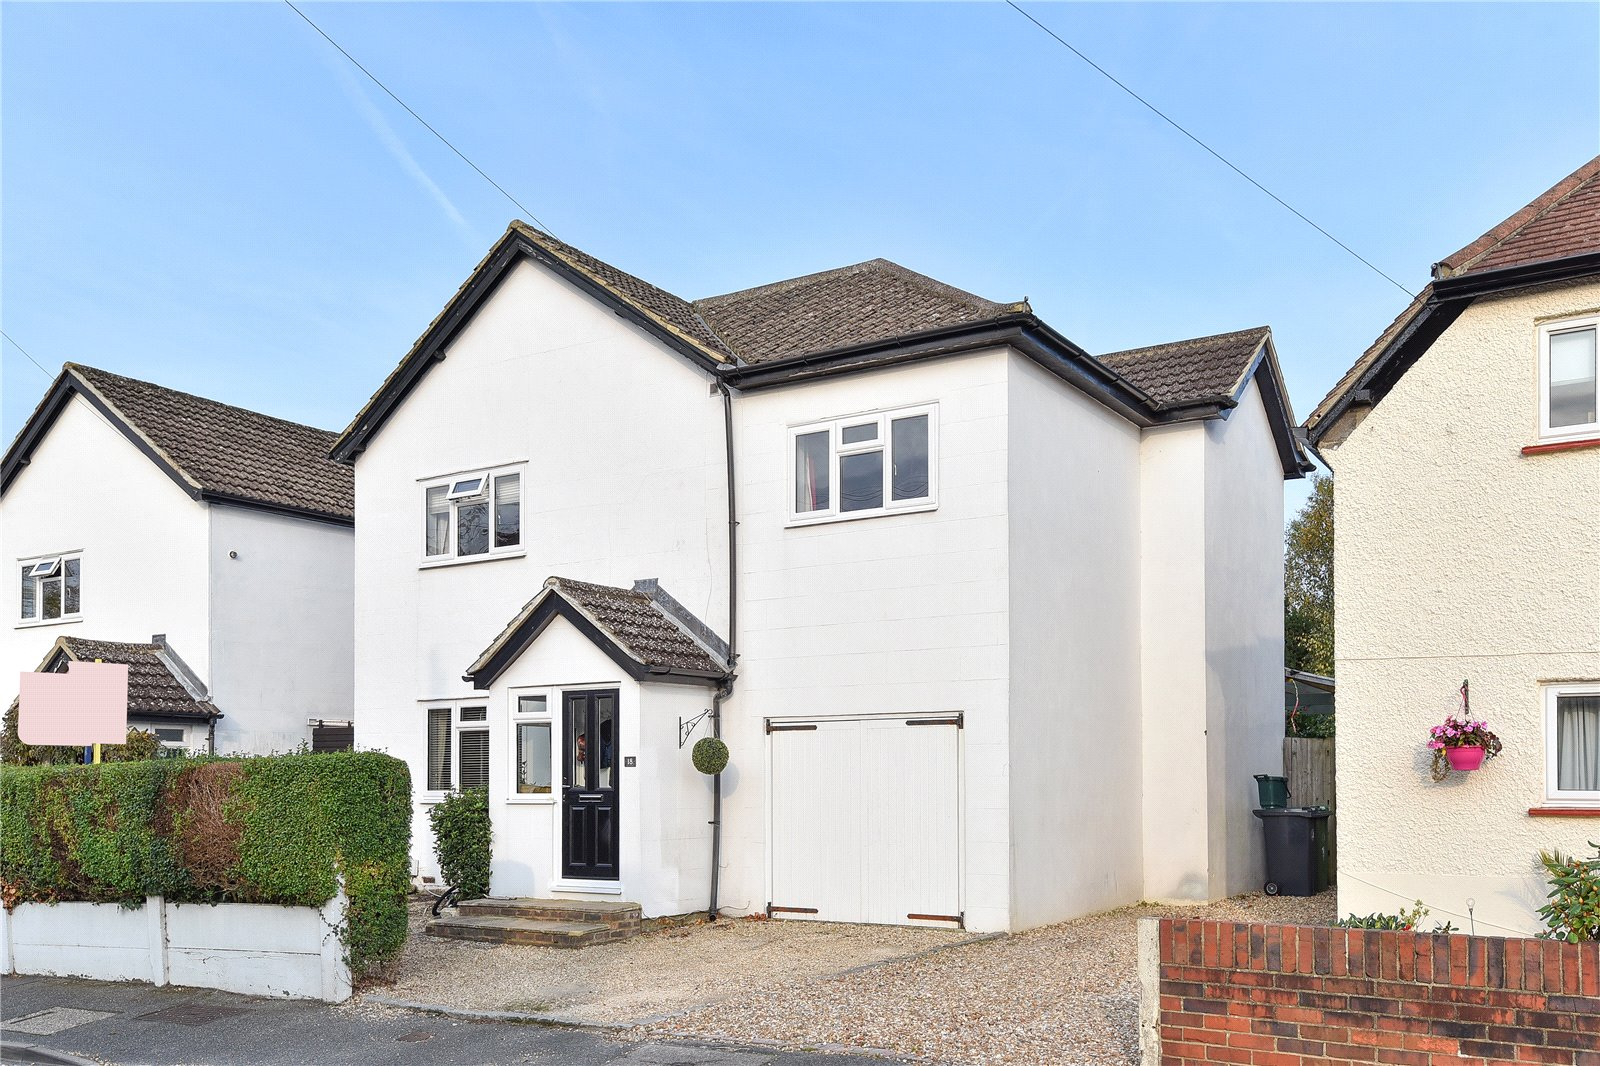 4 Bedrooms Detached House for sale in Cross Lane, Frimley Green, Camberley, Surrey, GU16